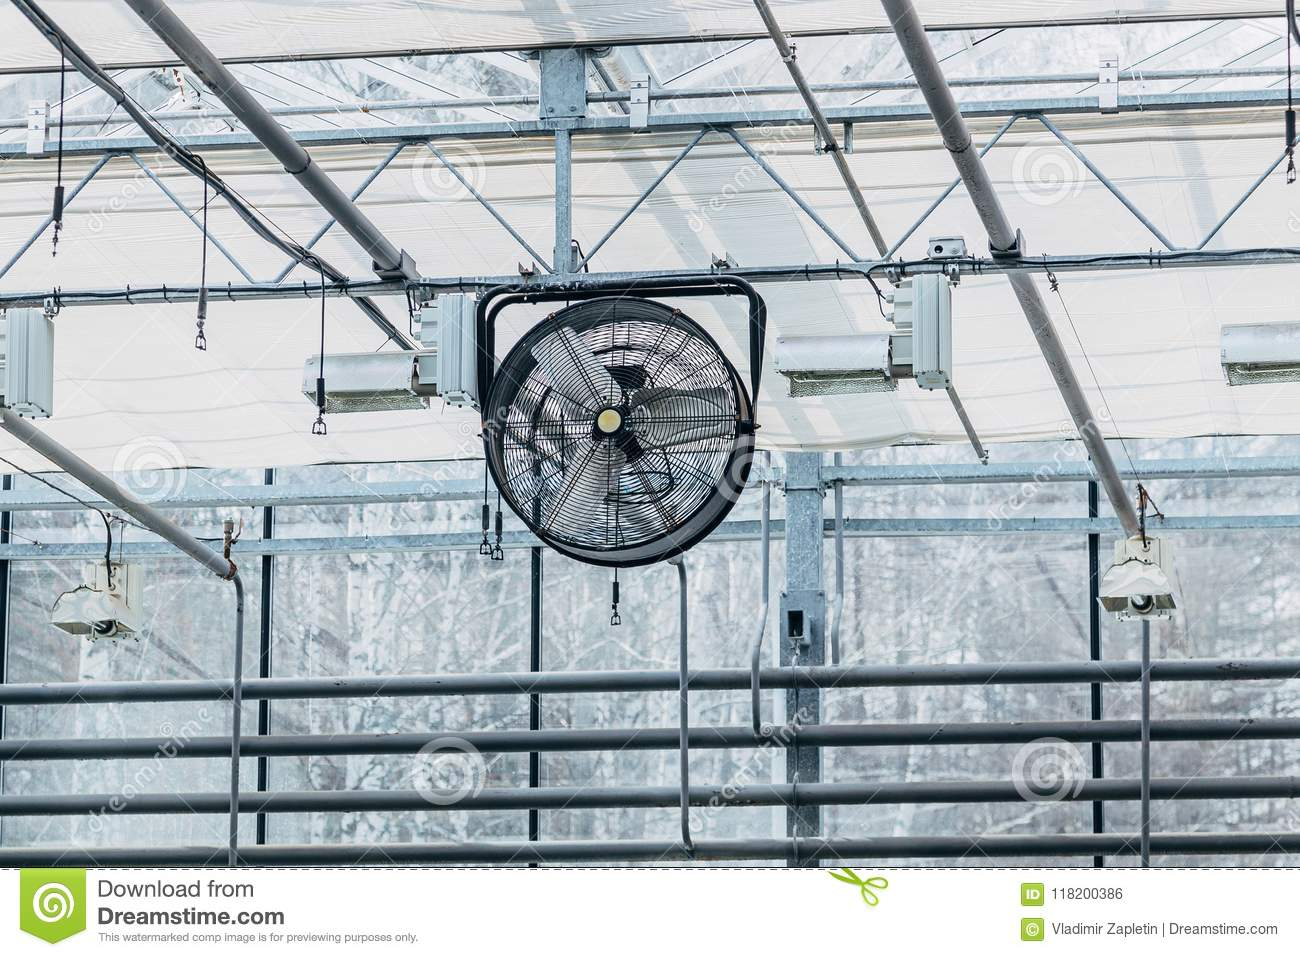 Fan in modern agricultural greenhouse.